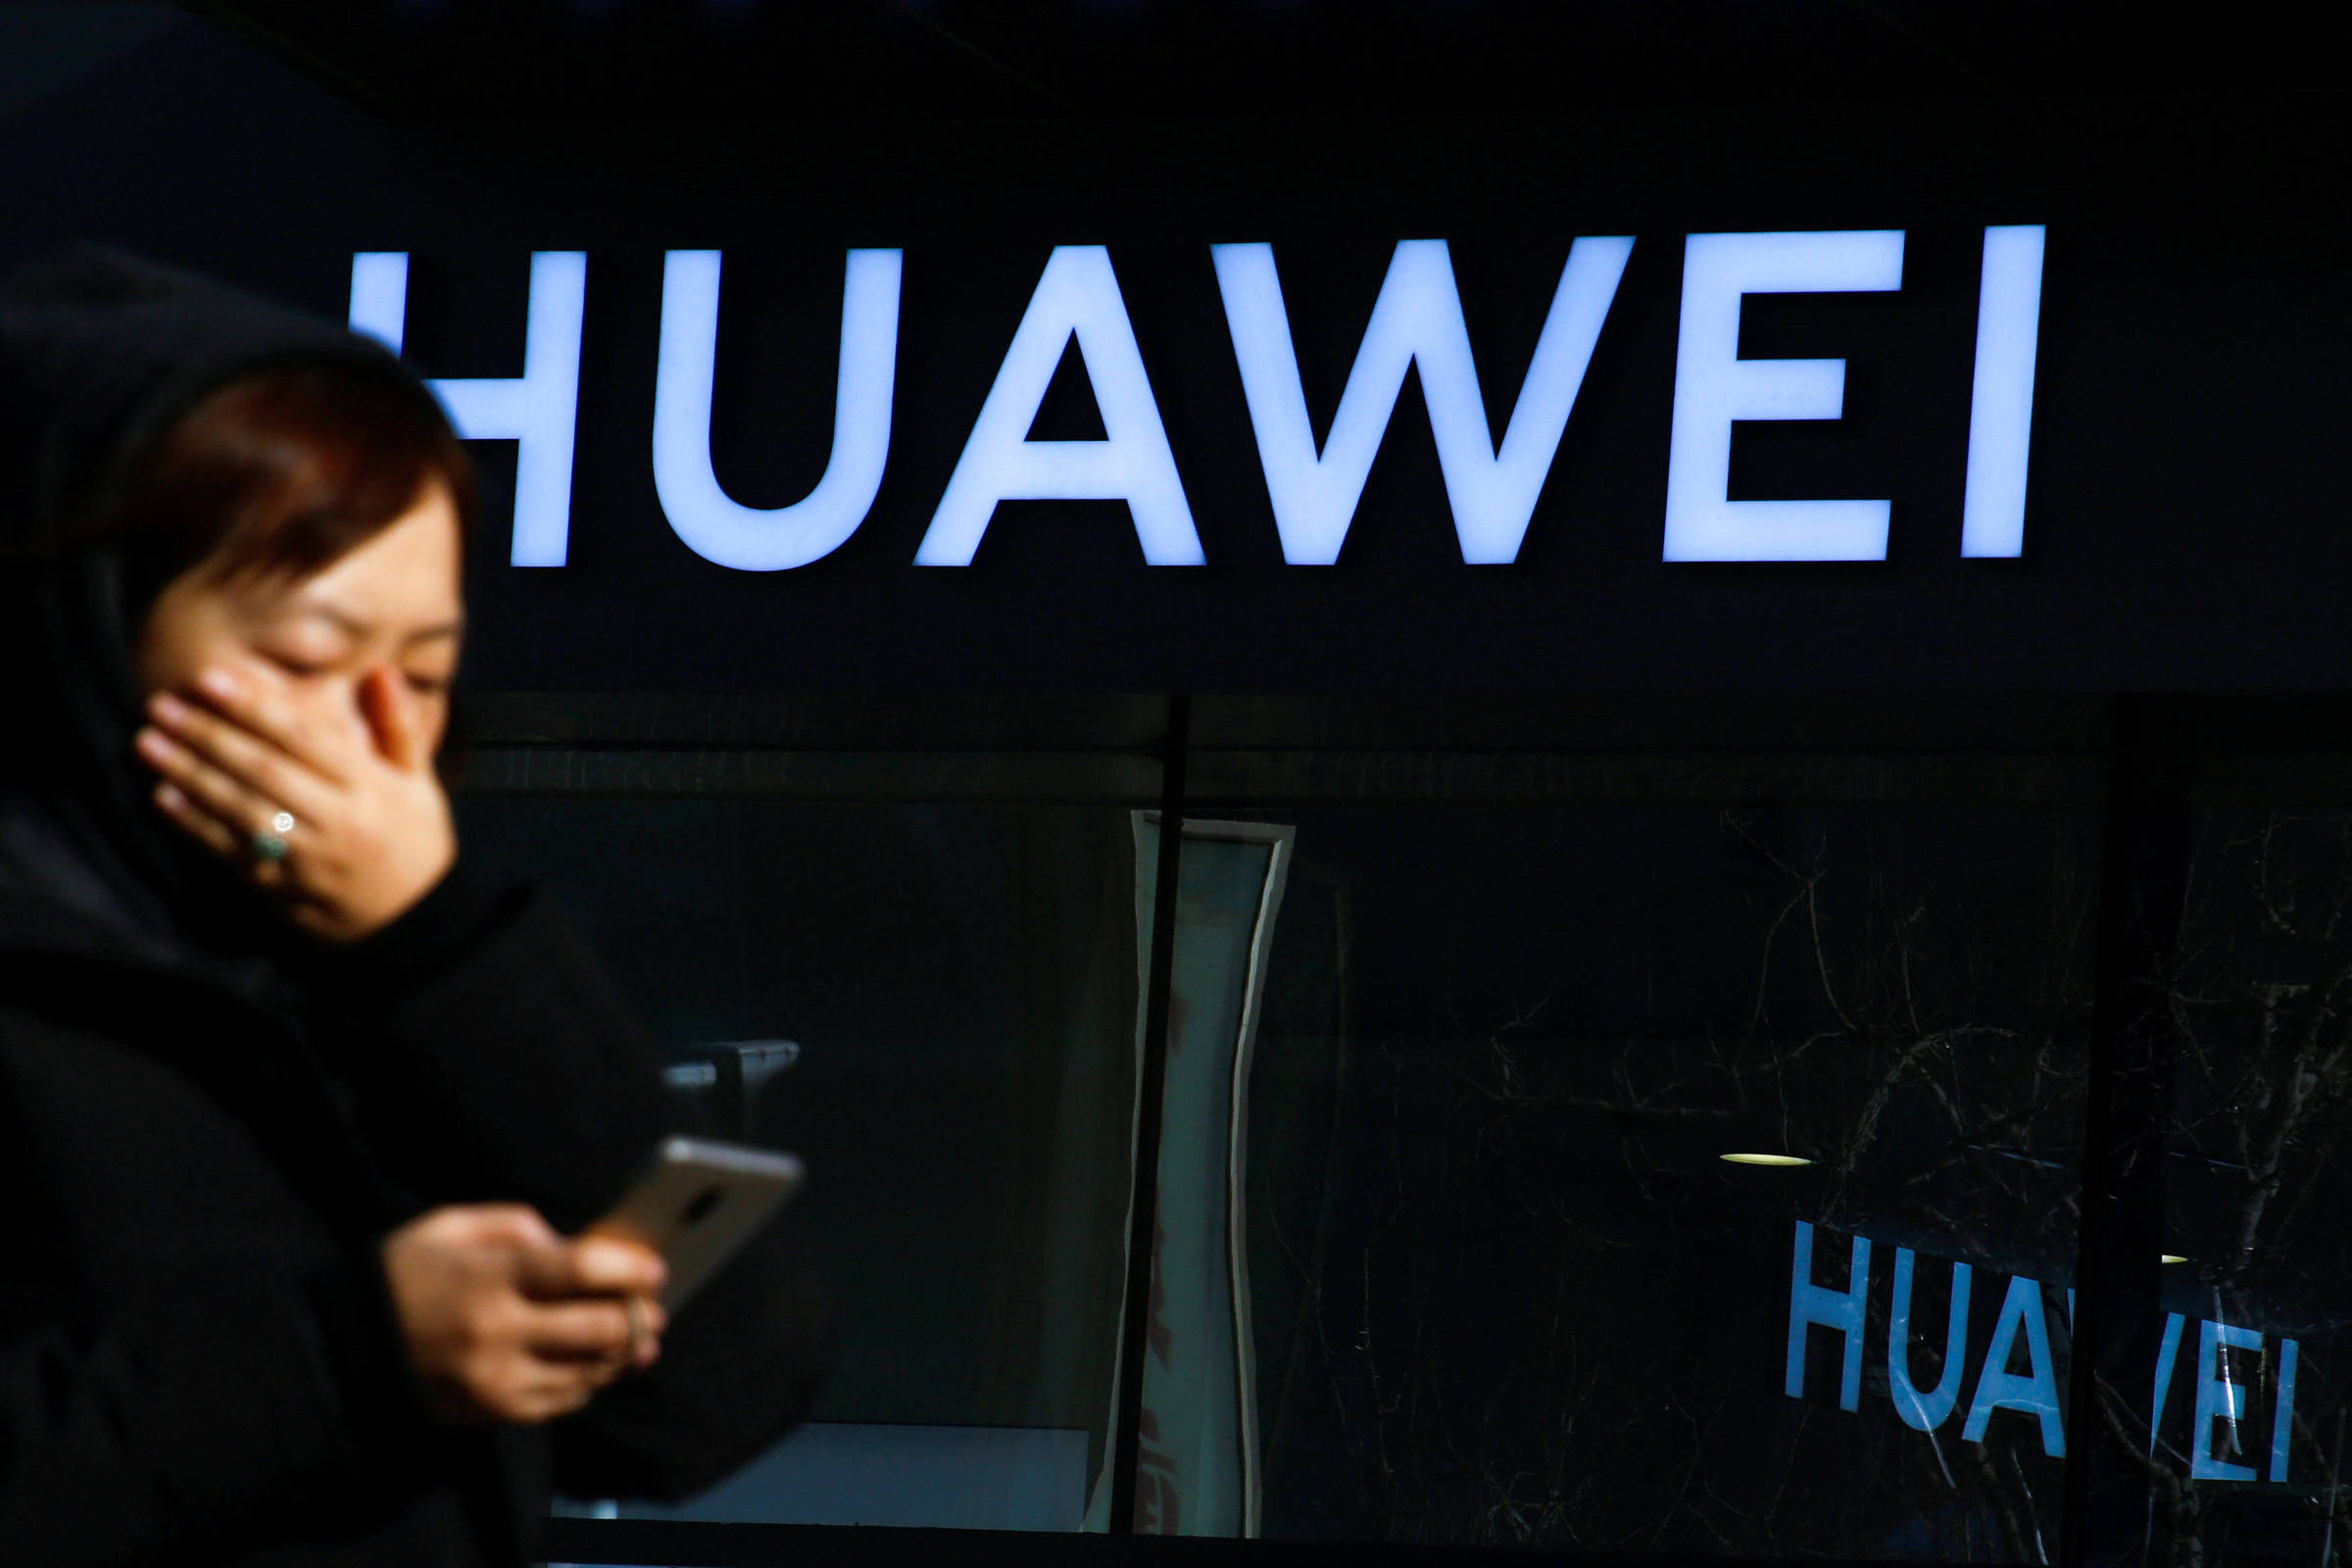 China acusa Reino Unido de ajudar Washington a prejudicar Huawei